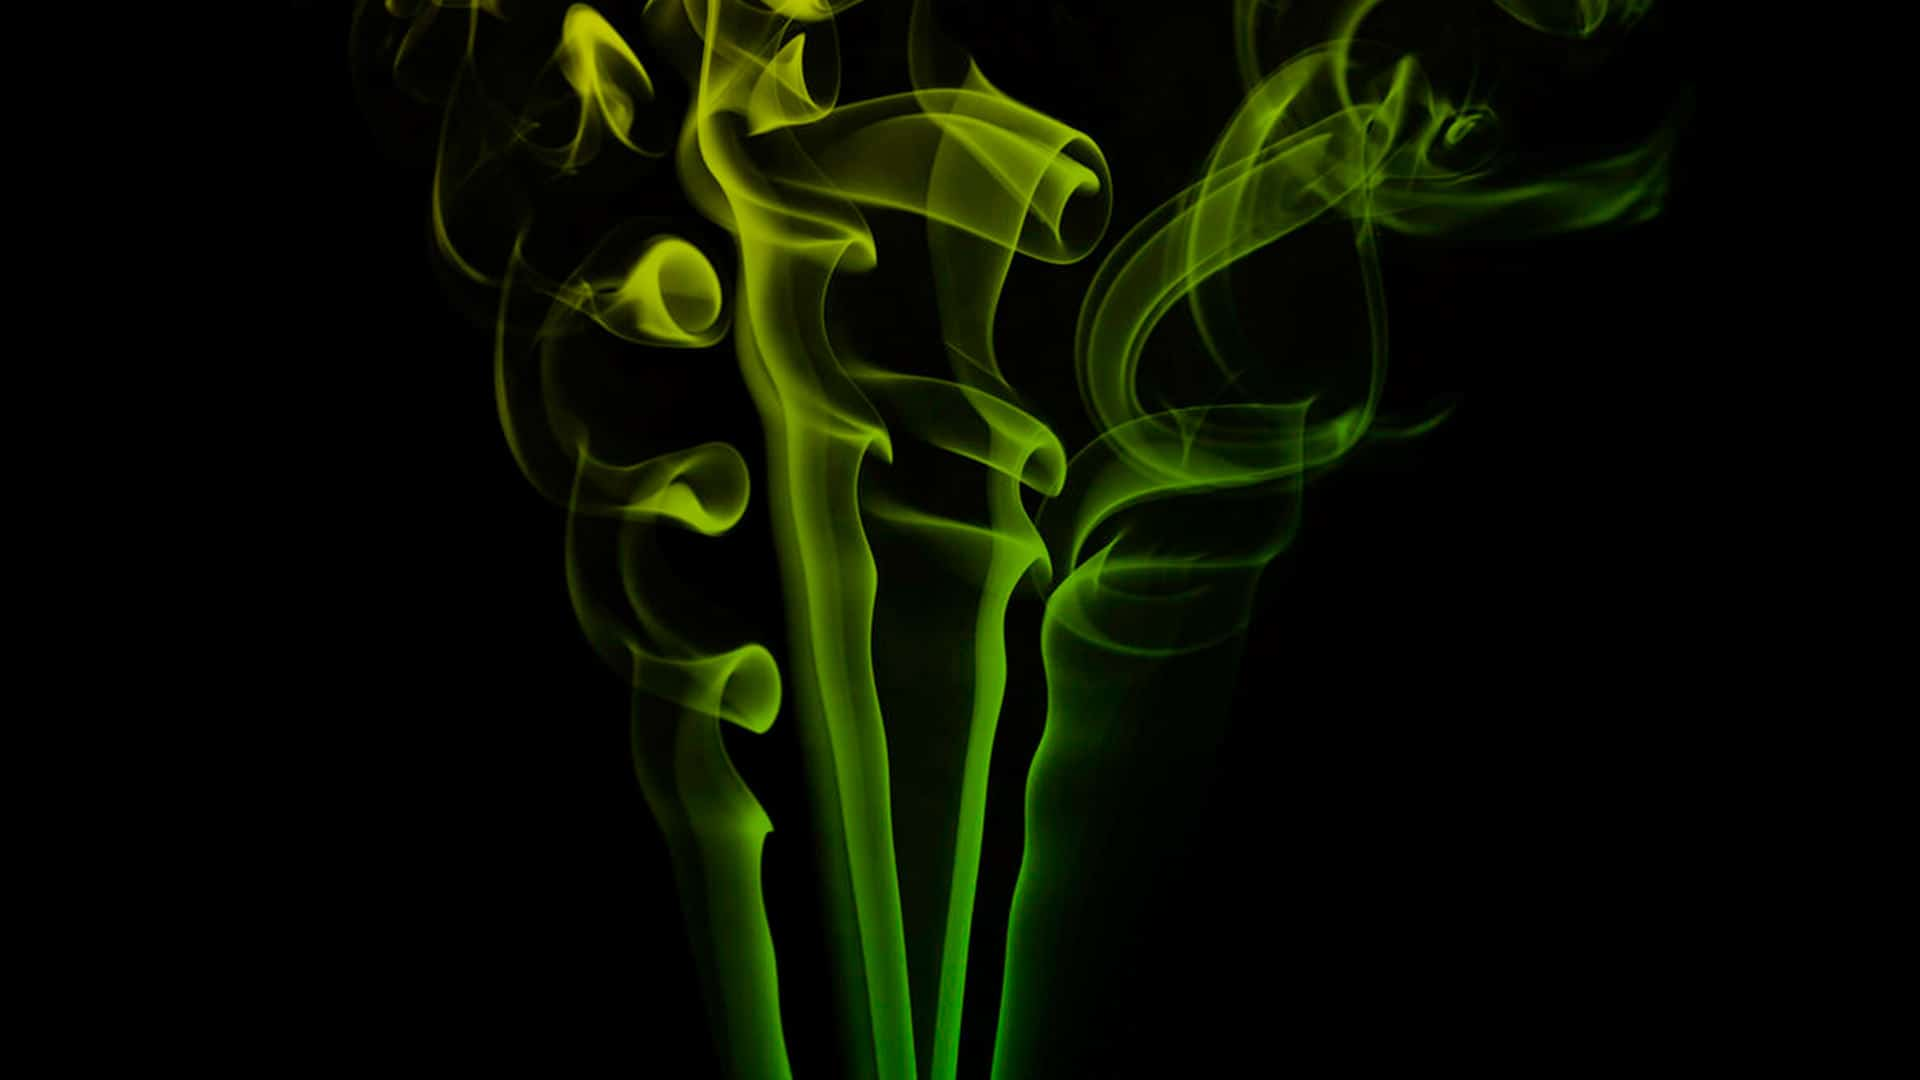 Smoke Photography – Project #1